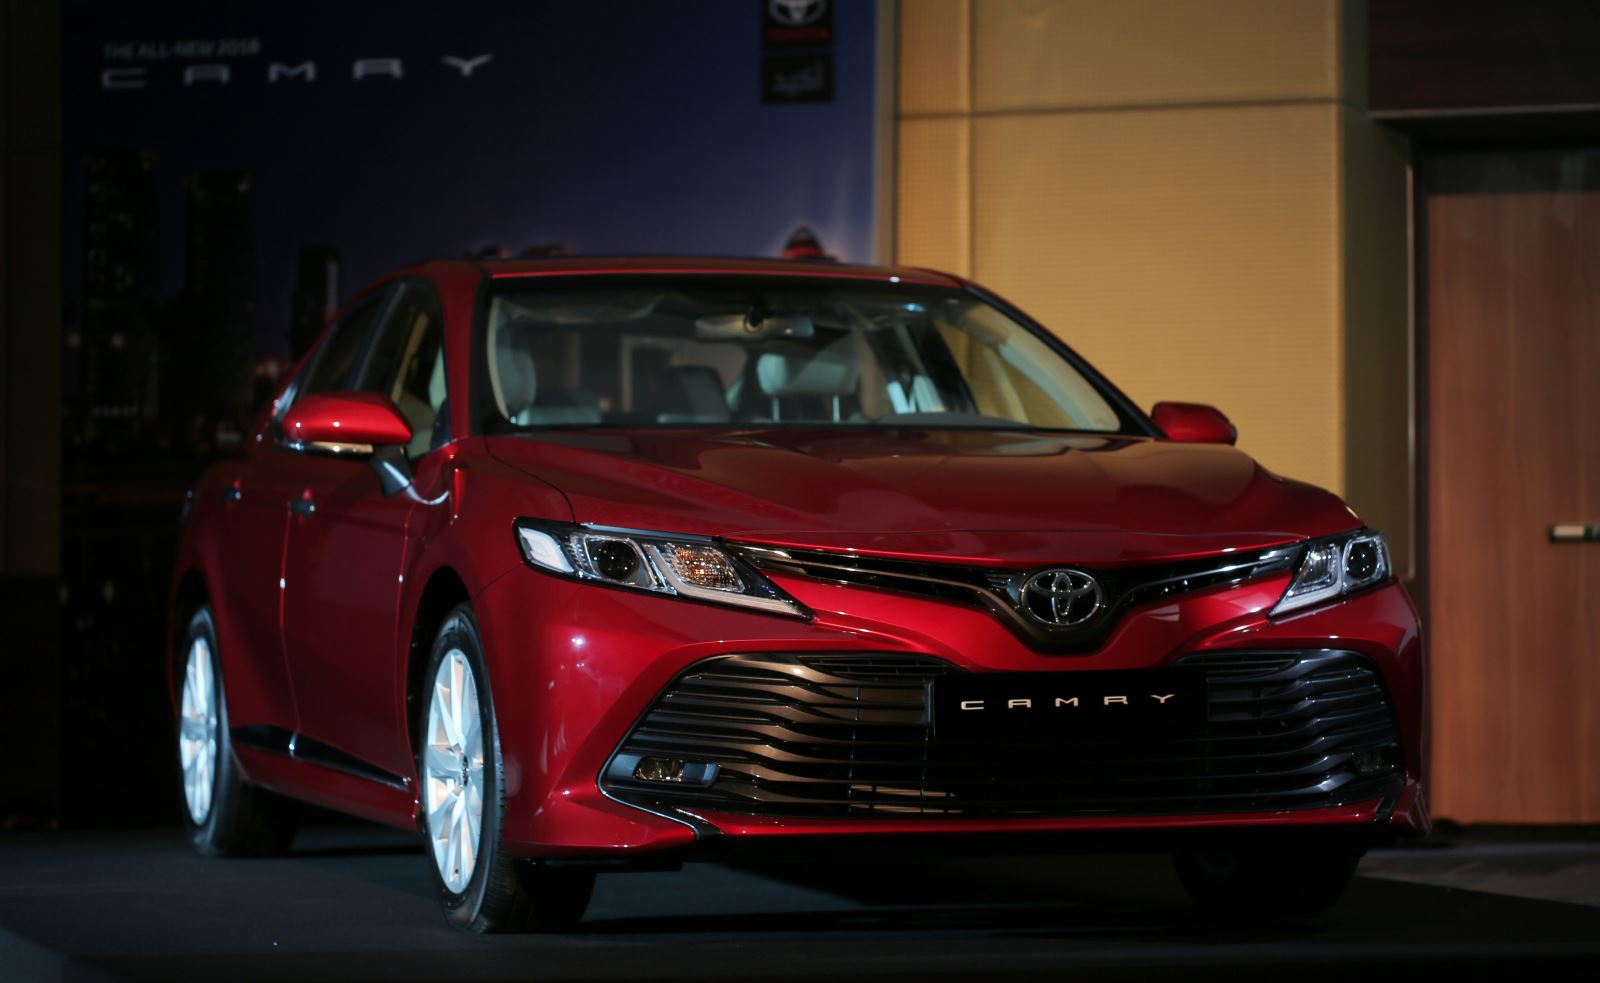 AAB launches the all-new Camry 2018